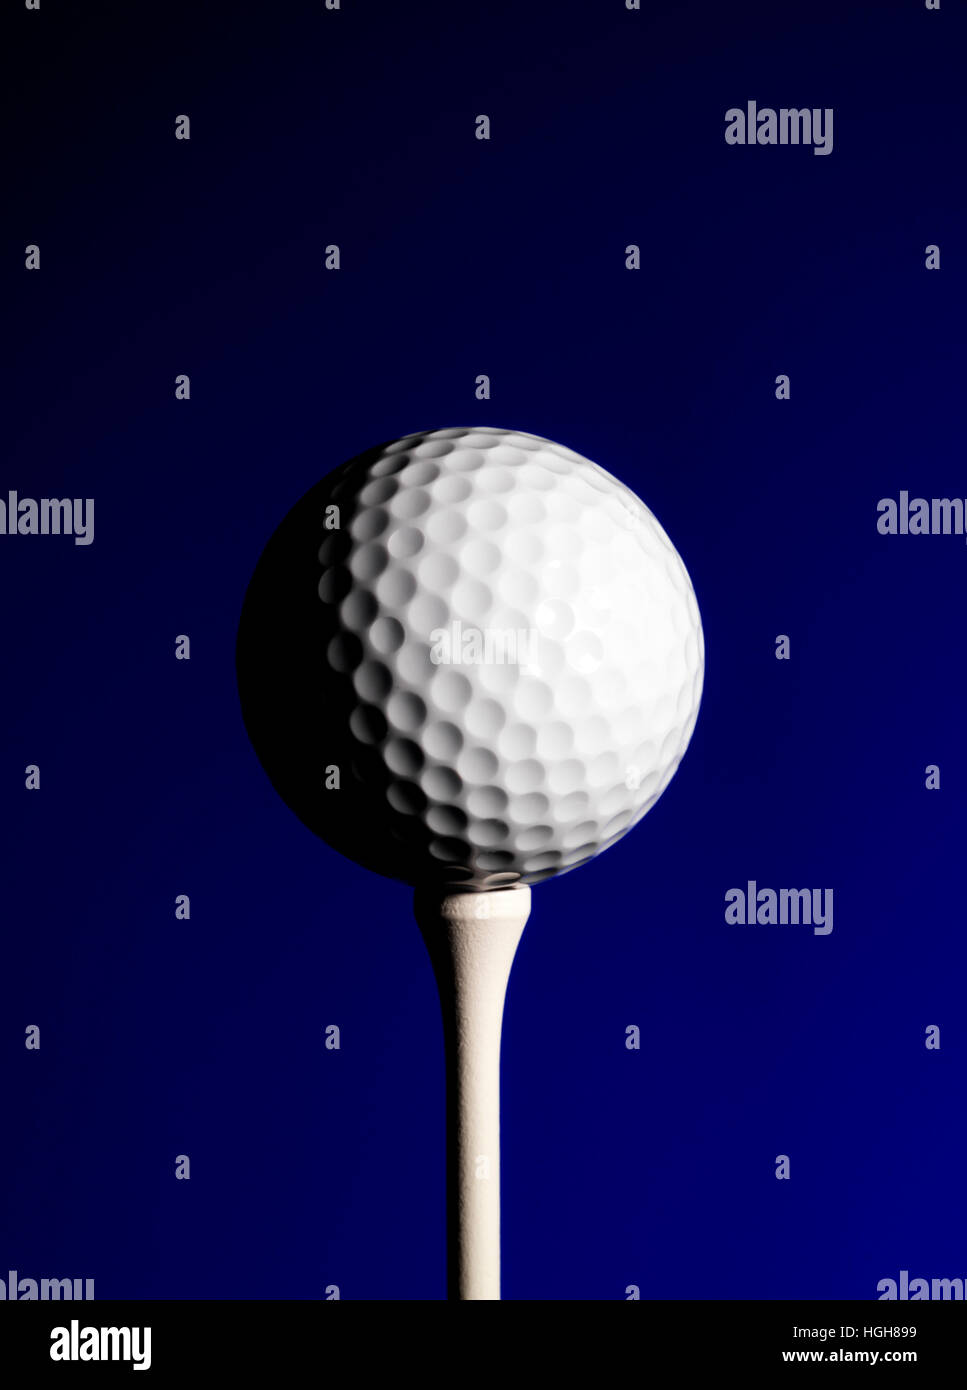 Golf Ball and tee with a blue background - Stock Image